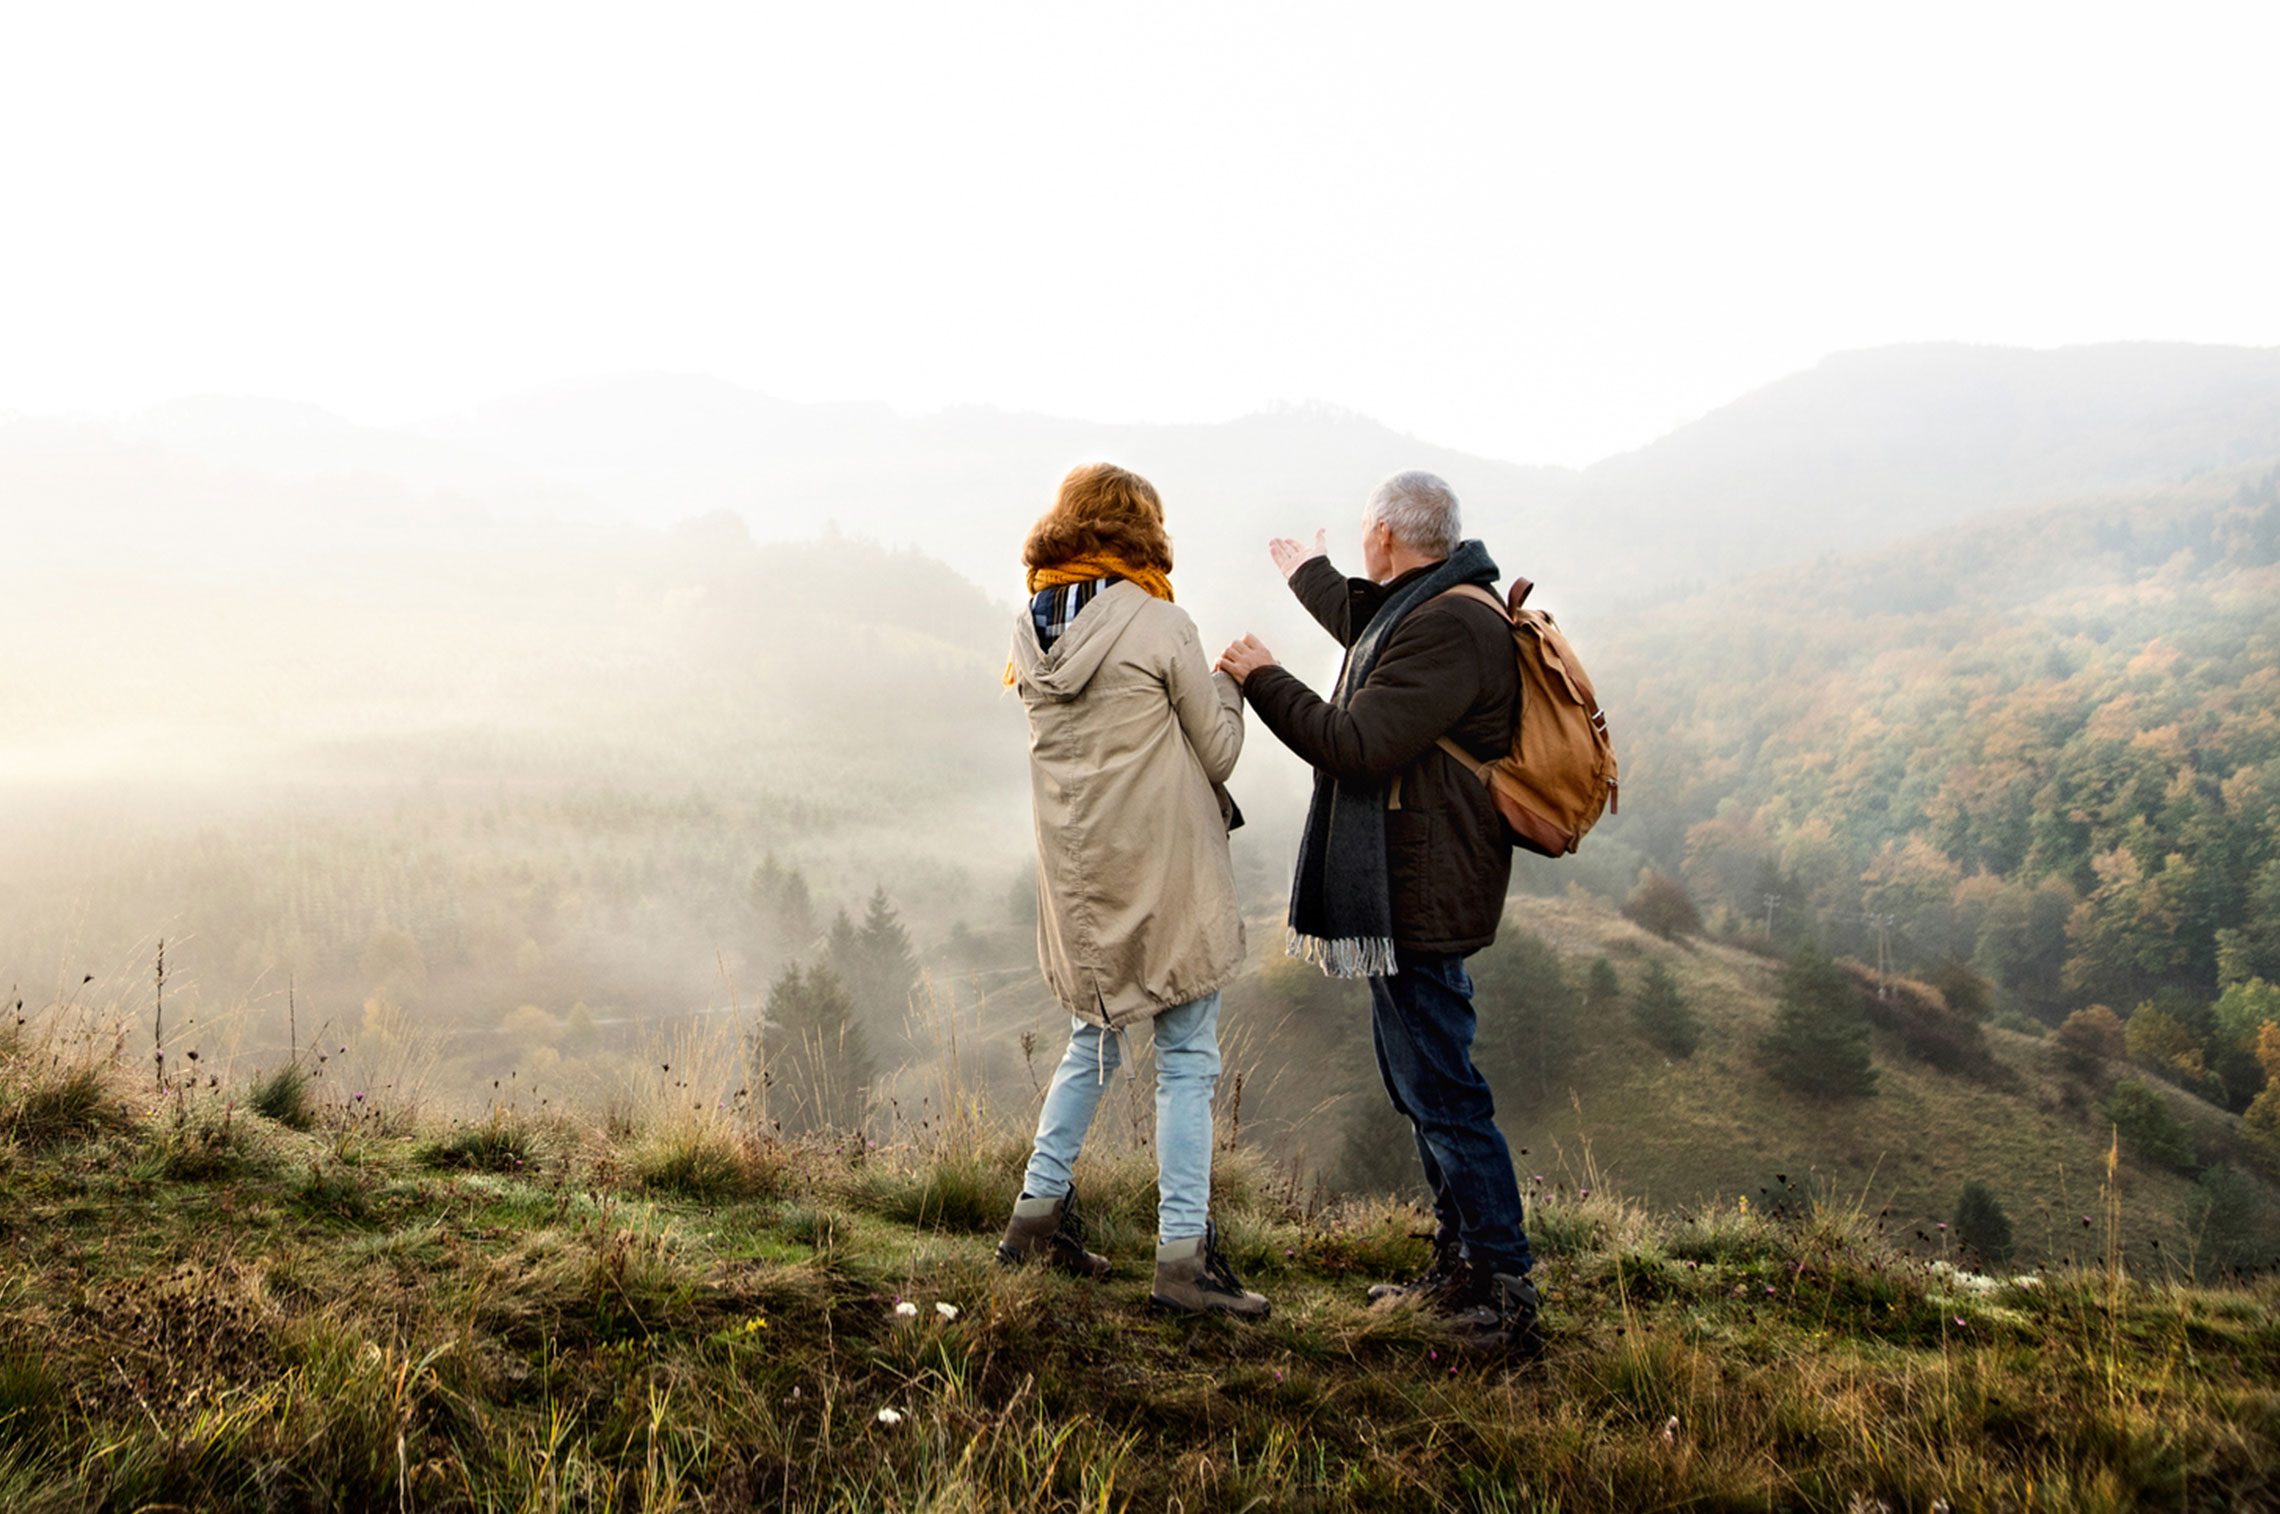 Take a Hike! 9 Tips for Enjoying the Great Outdoors